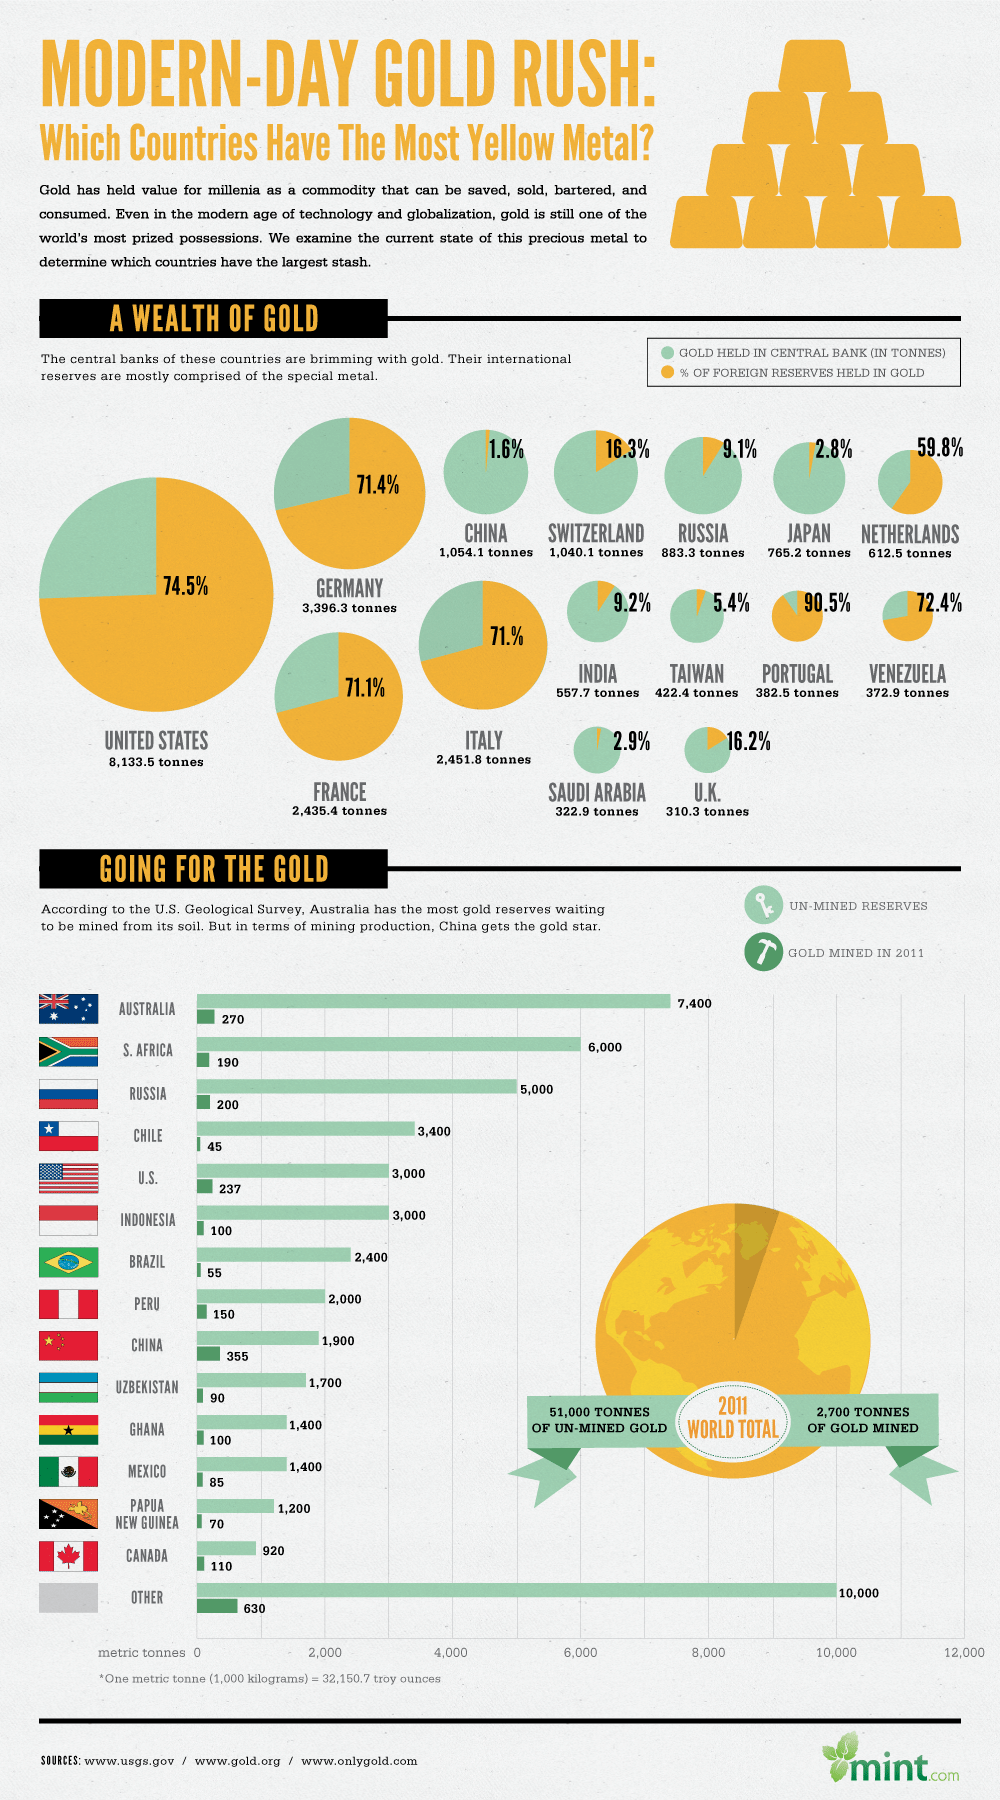 Infographic: Which Countries Have the Largest Stash of Gold?